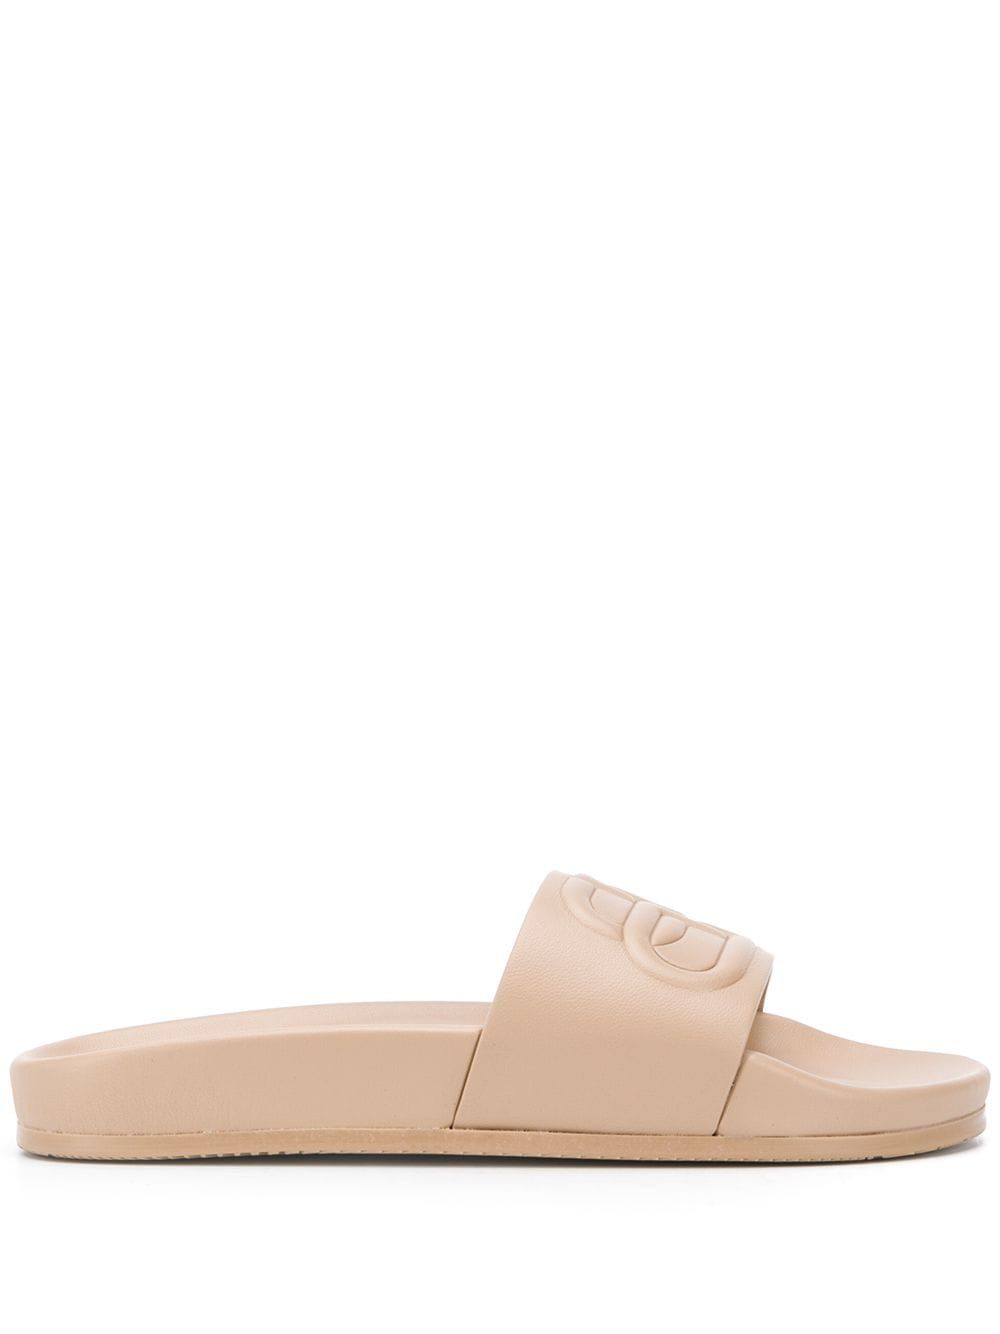 Balenciaga BALENCIAGA WOMEN'S BEIGE LEATHER SANDALS